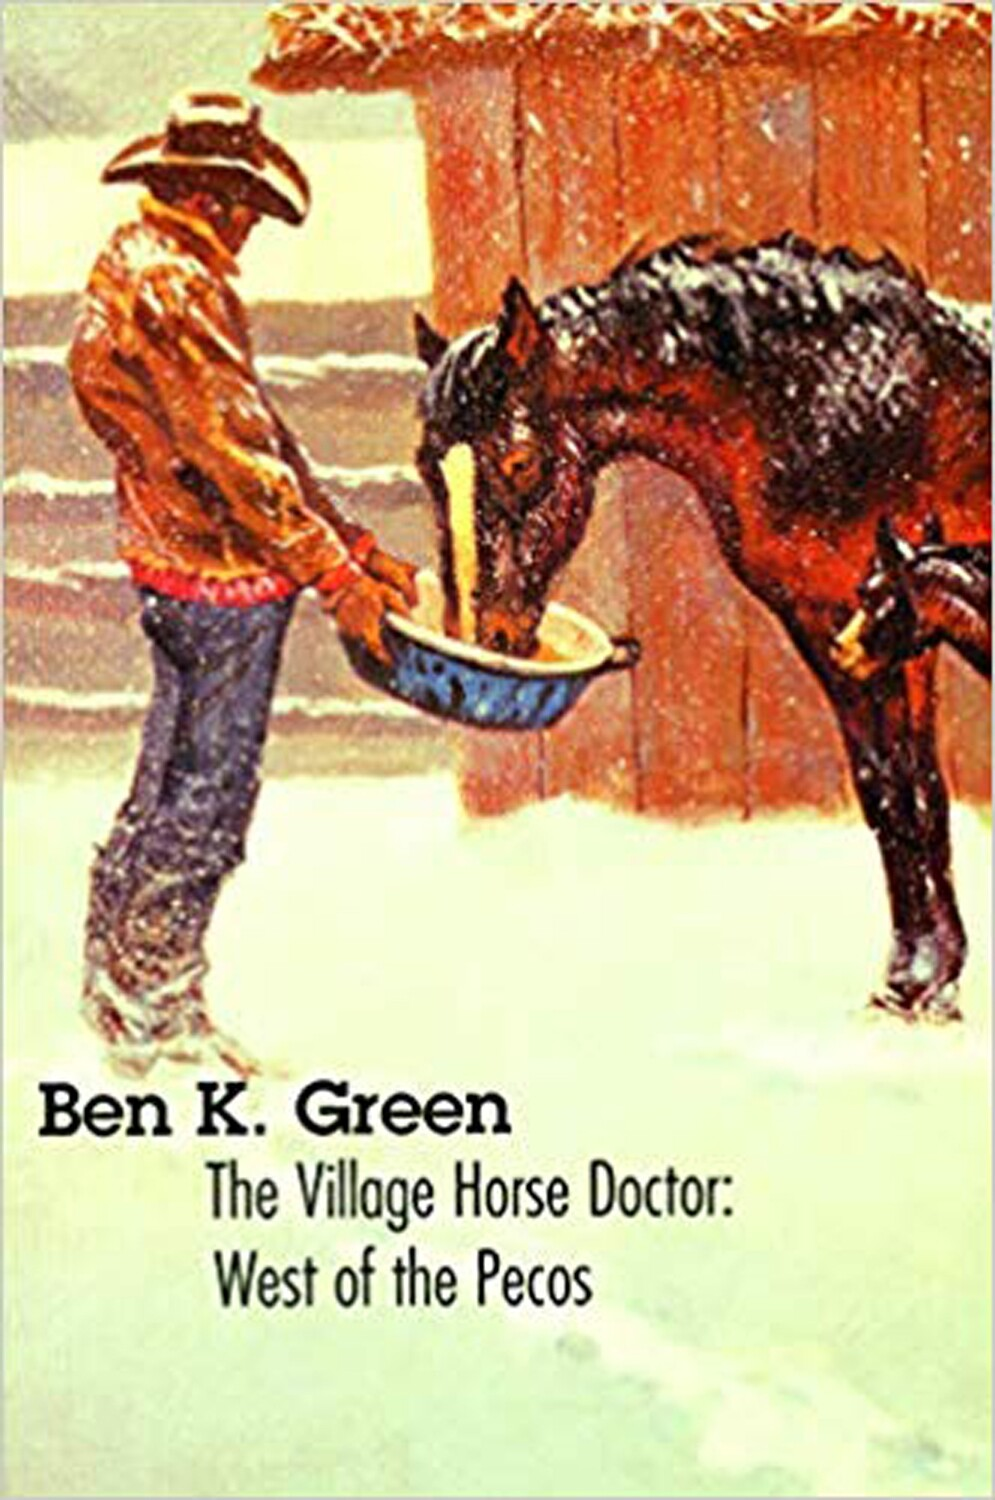 The Village Horse Doctor